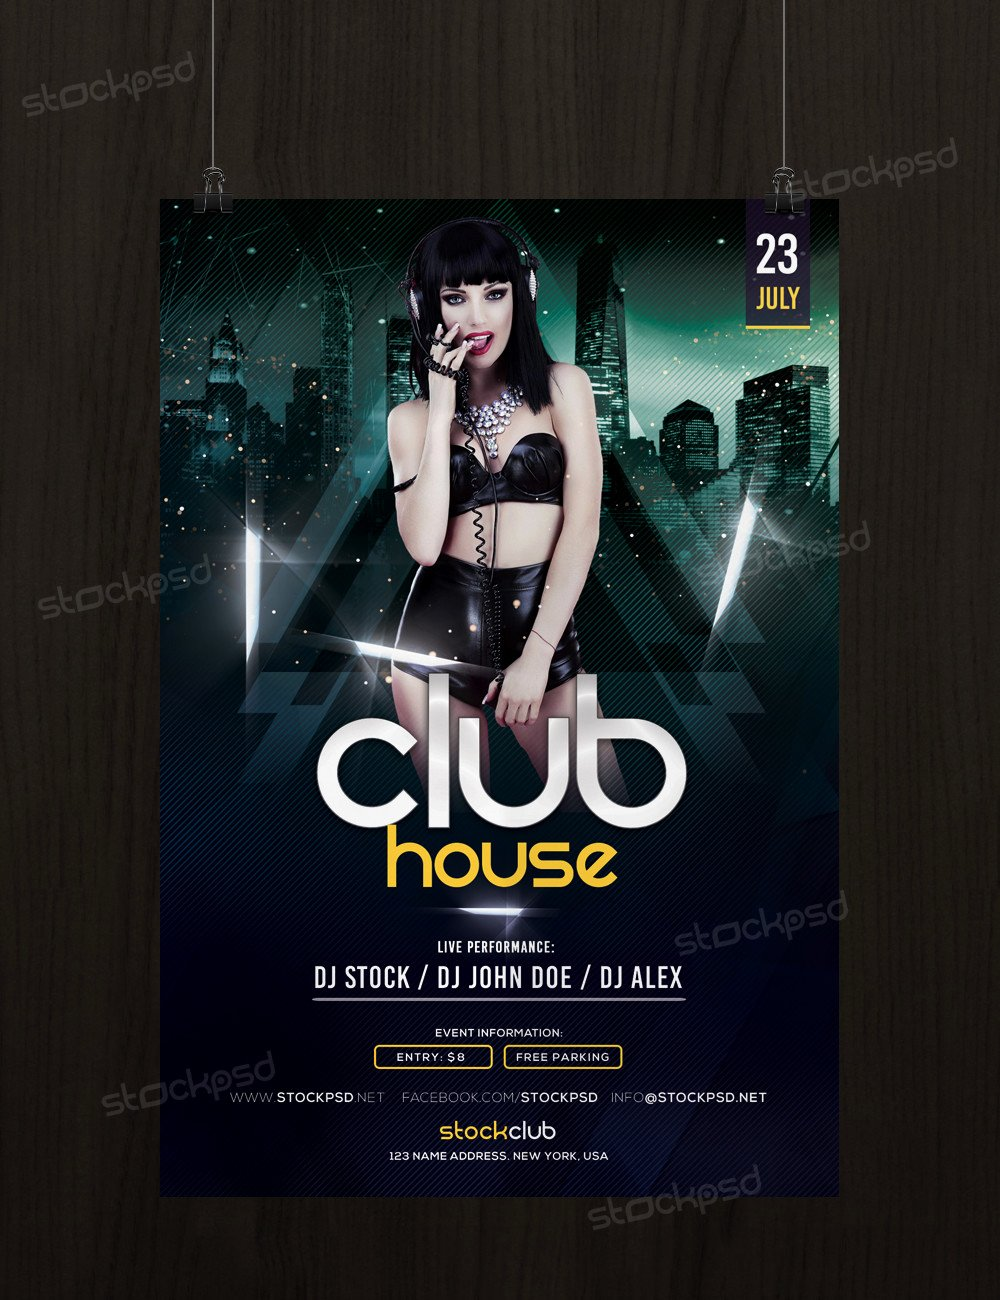 Club House Download Free Psd Flyer Template Stockpsd